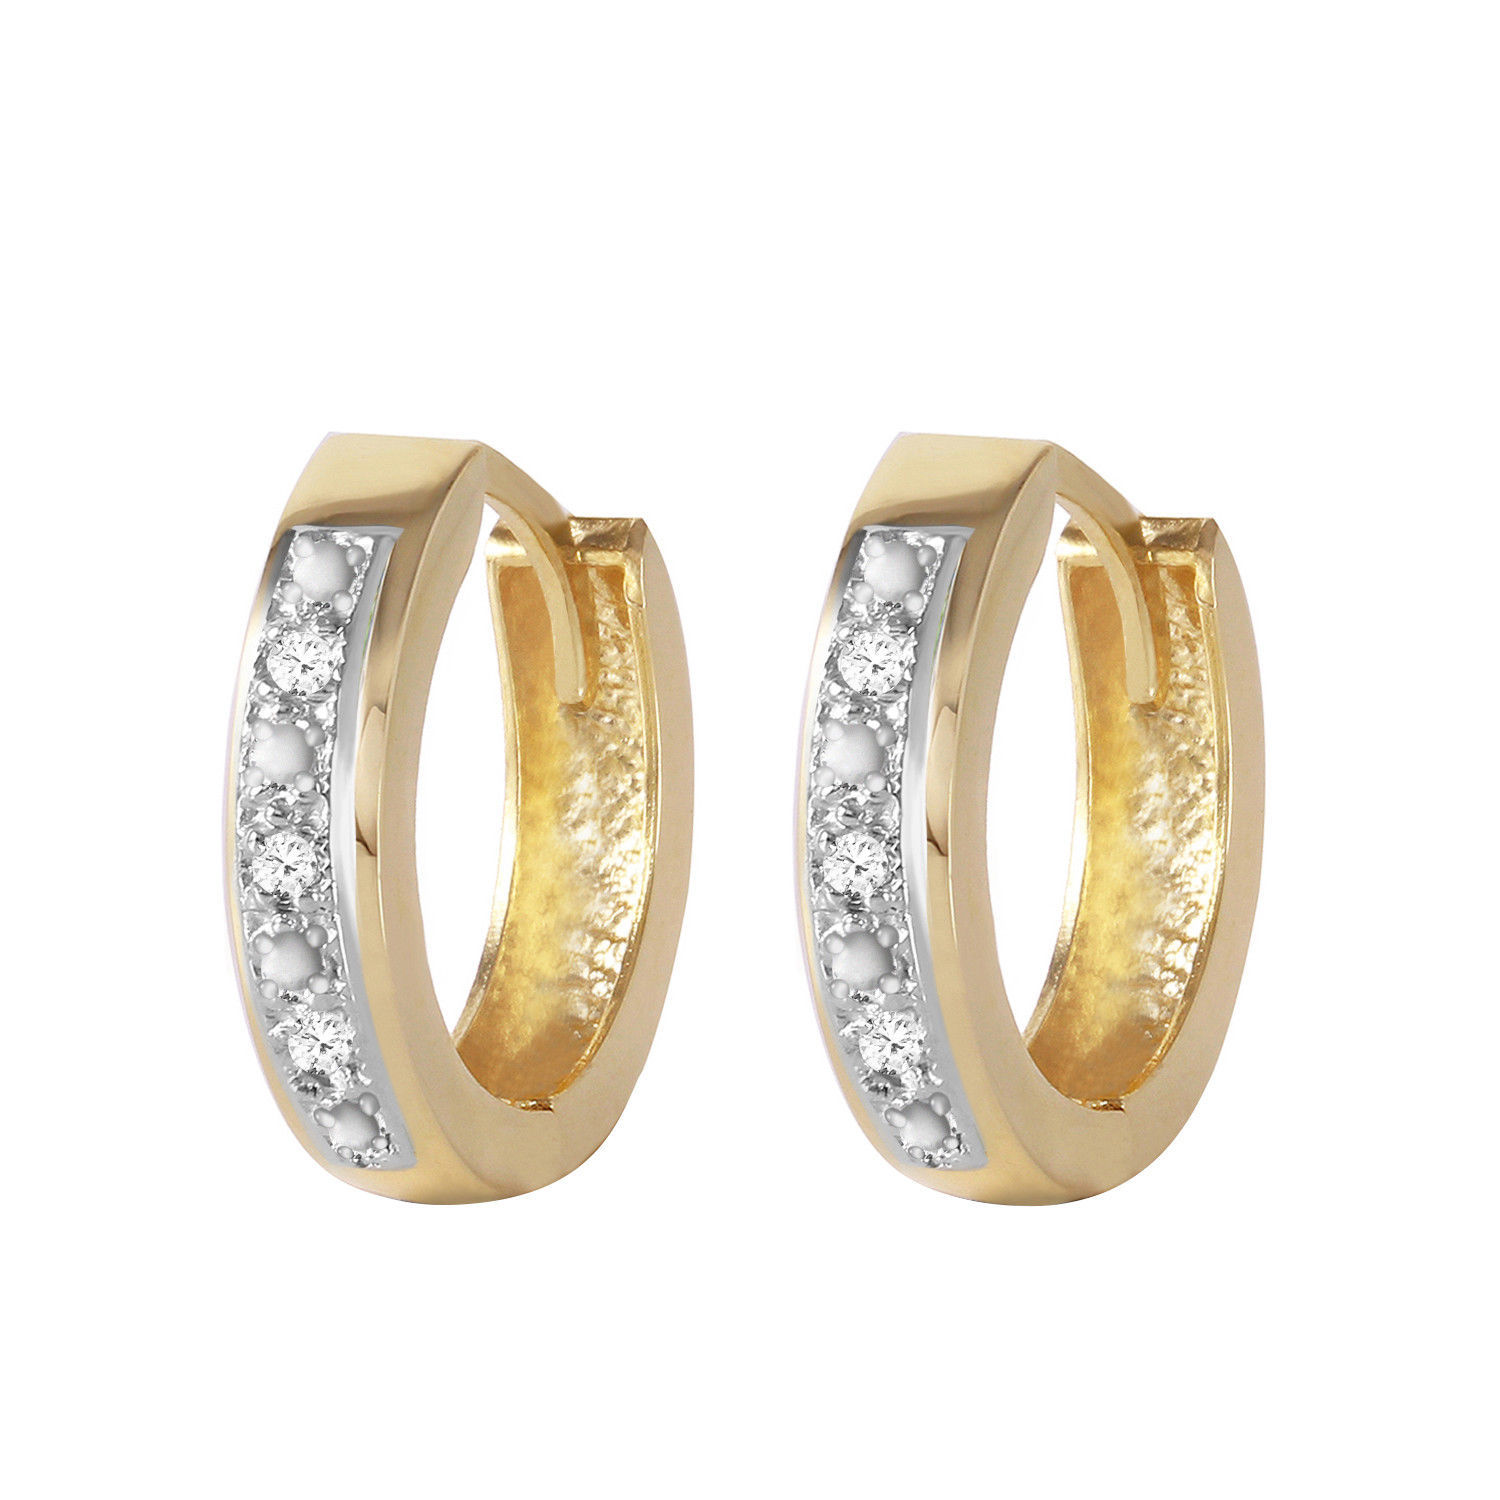 Primary image for 0.04 Carat 14K Solid Gold Hoop Huggie Earrings Diamond